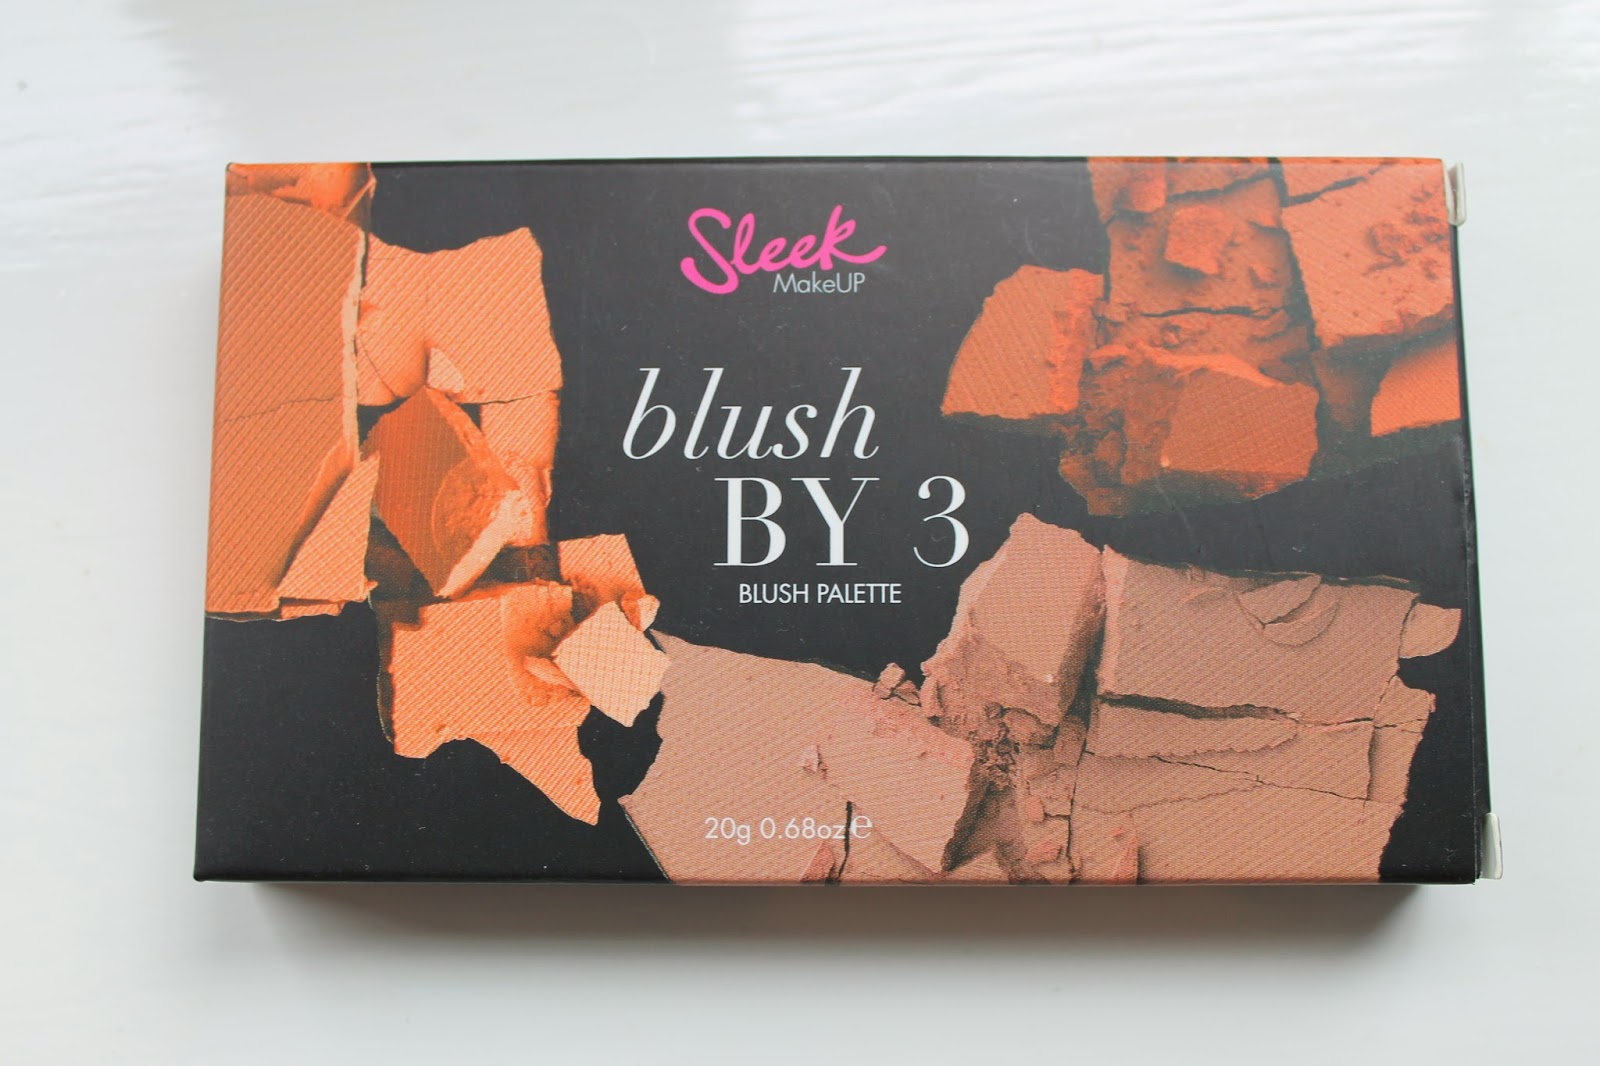 Sleek Blush By 3 in Lace